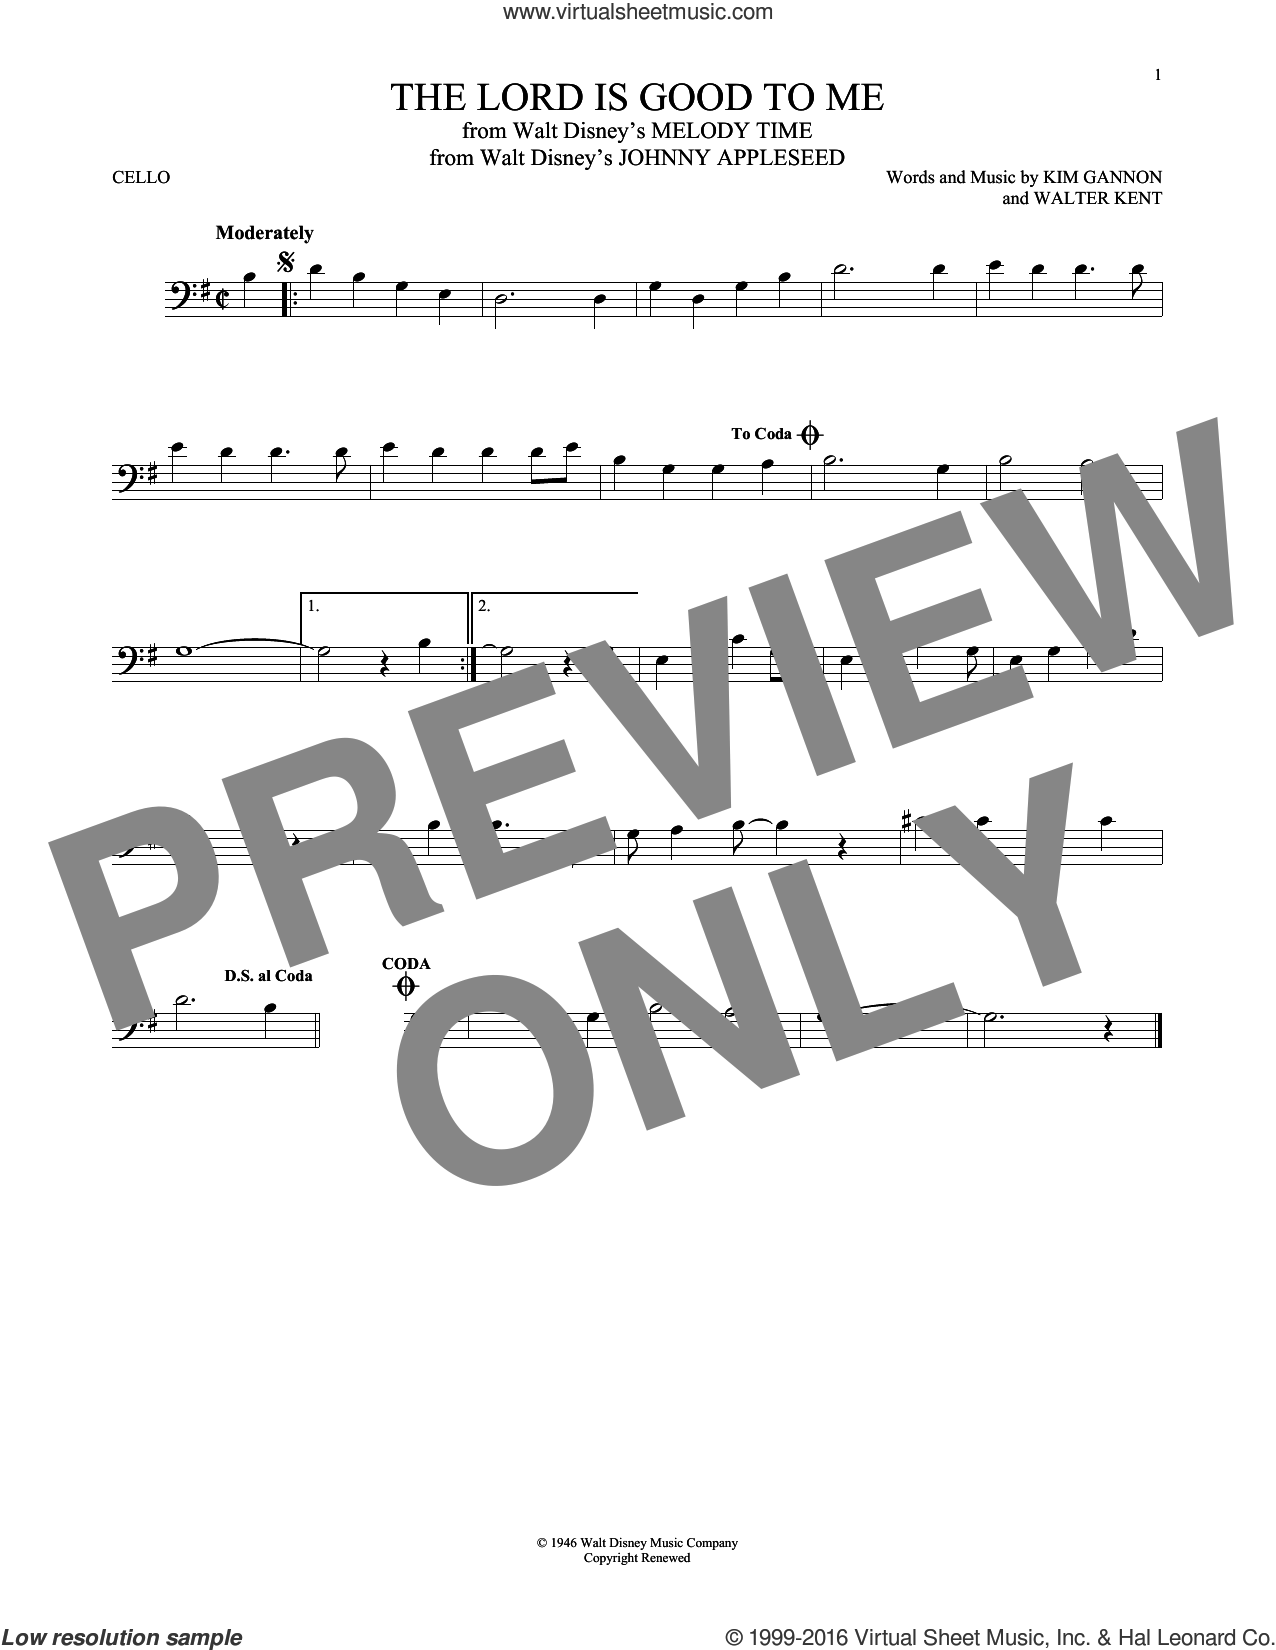 The Lord Is Good To Me sheet music for cello solo by Kim Gannon and Walter Kent, intermediate skill level